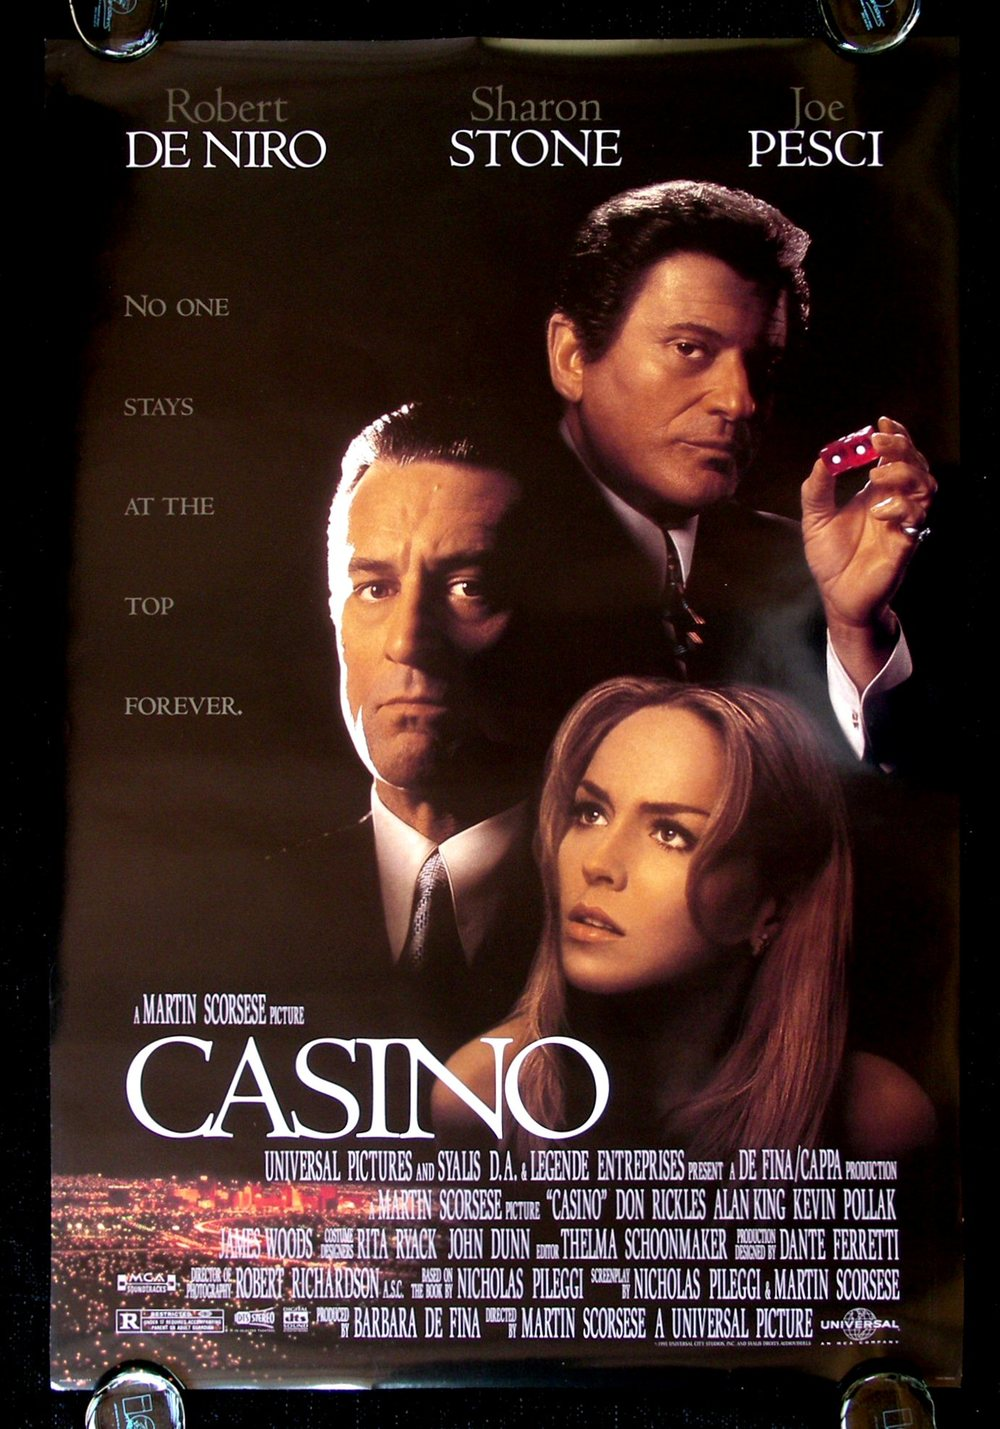 CAsino Movie poster.jpg